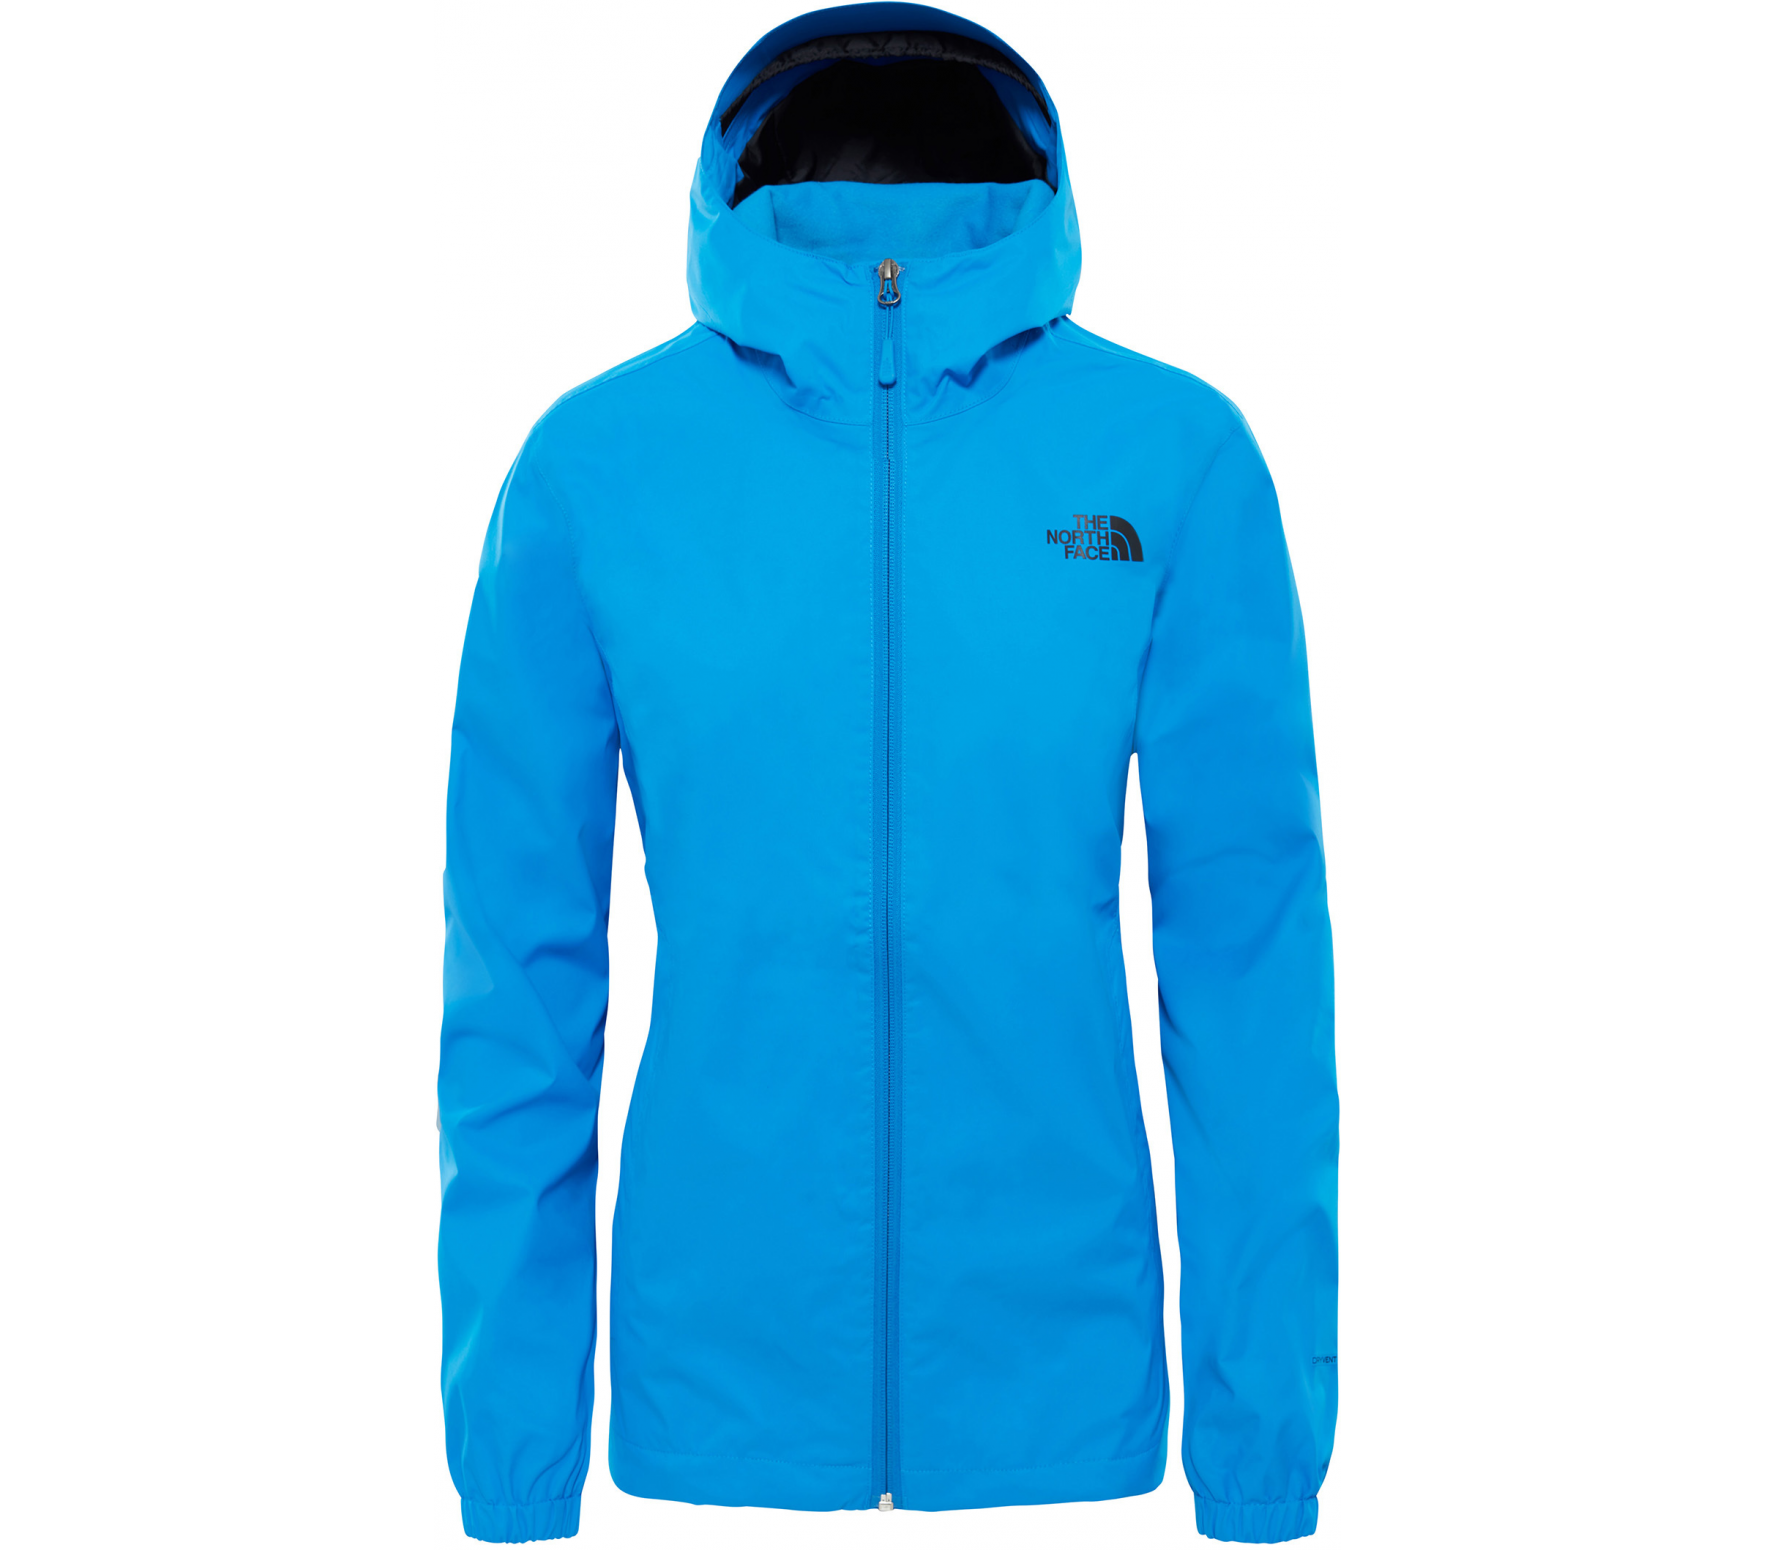 6327e53282 The North Face - Quest women s outdoor jacket (blue) - buy it at the ...